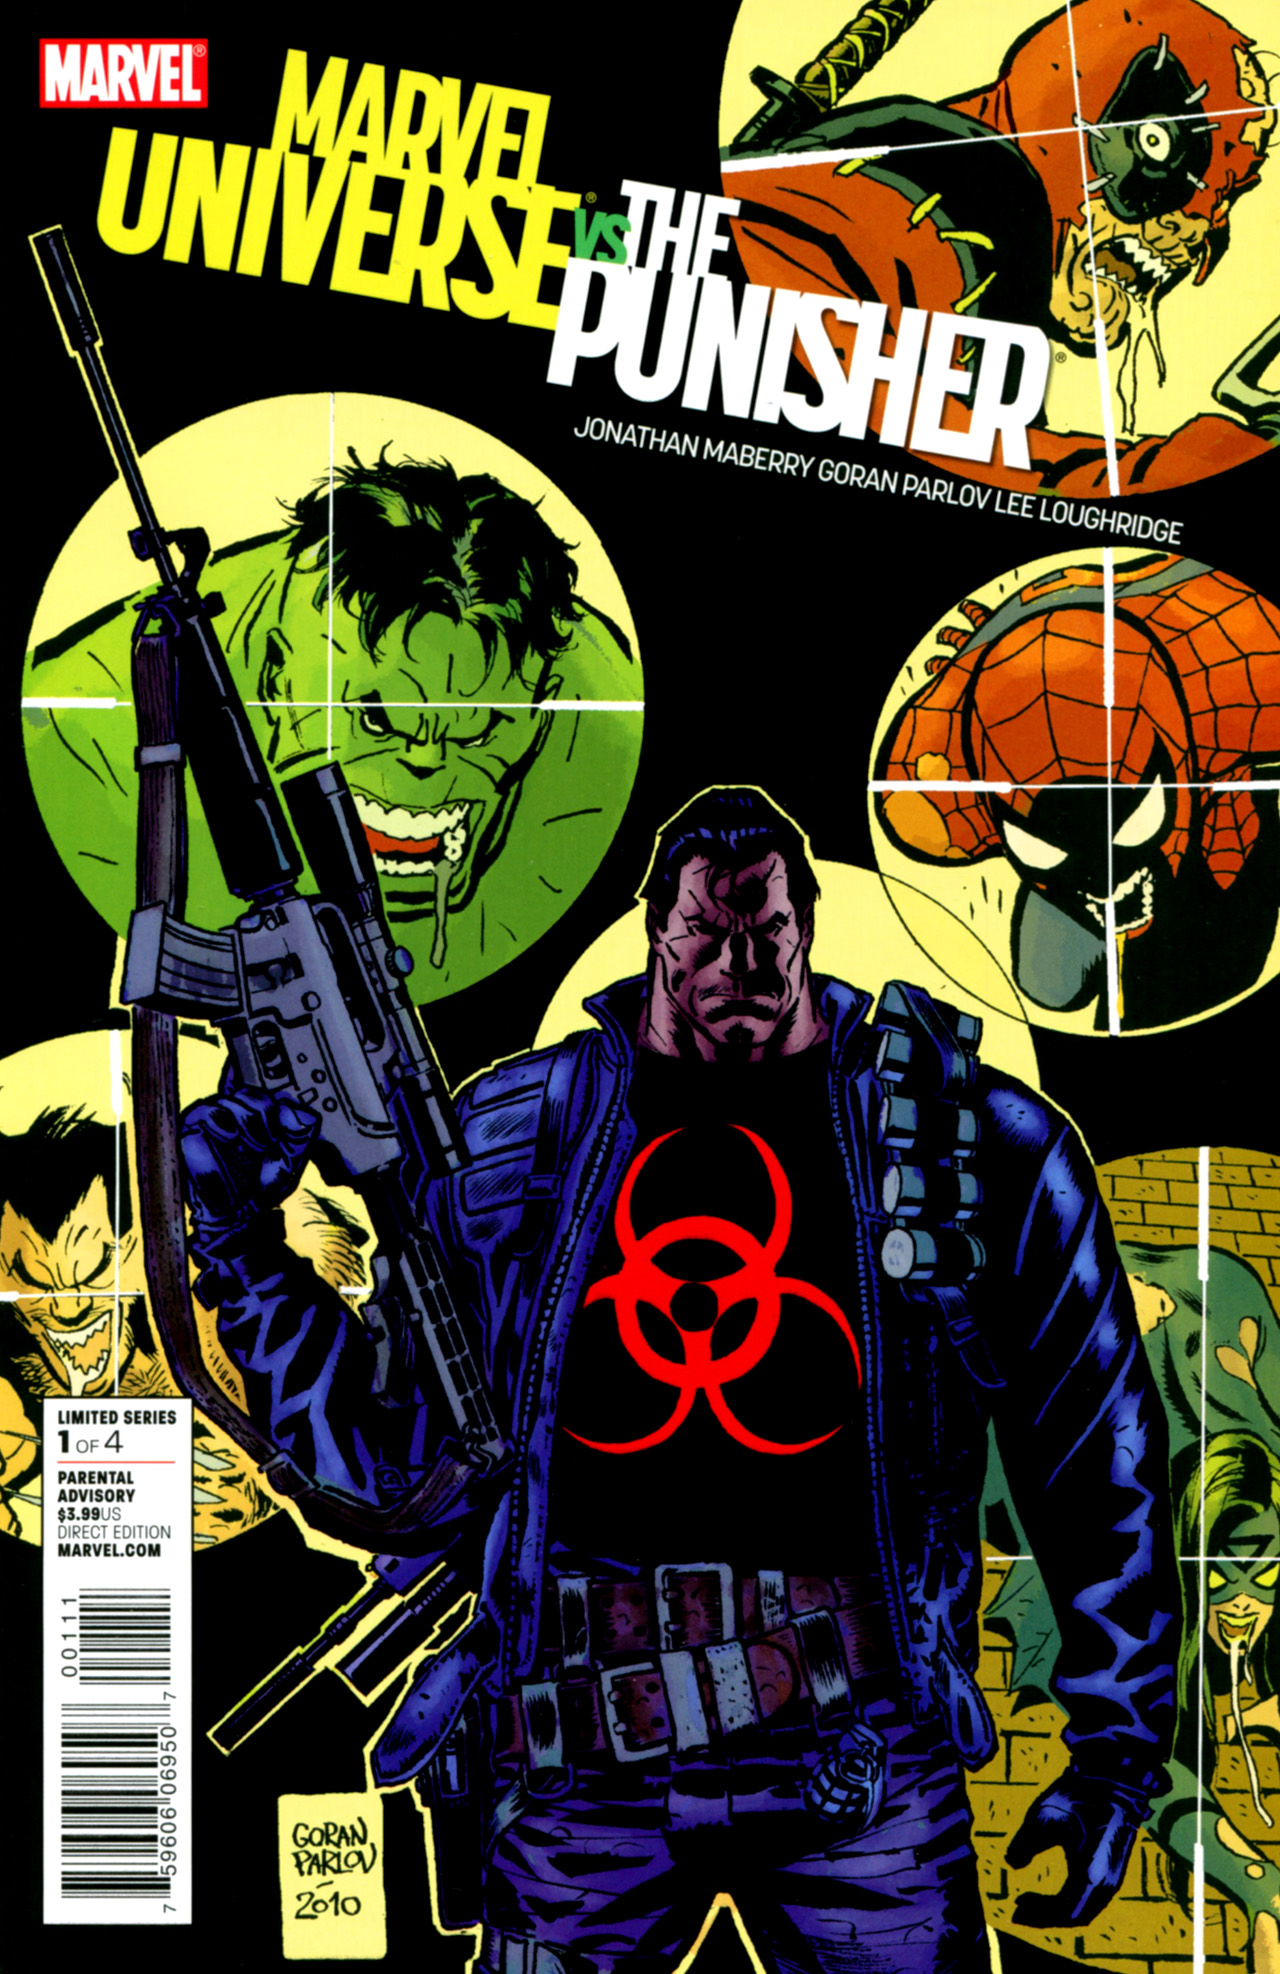 Marvel Universe Vs The Punisher Issue #1 (2010) Comic Book Review